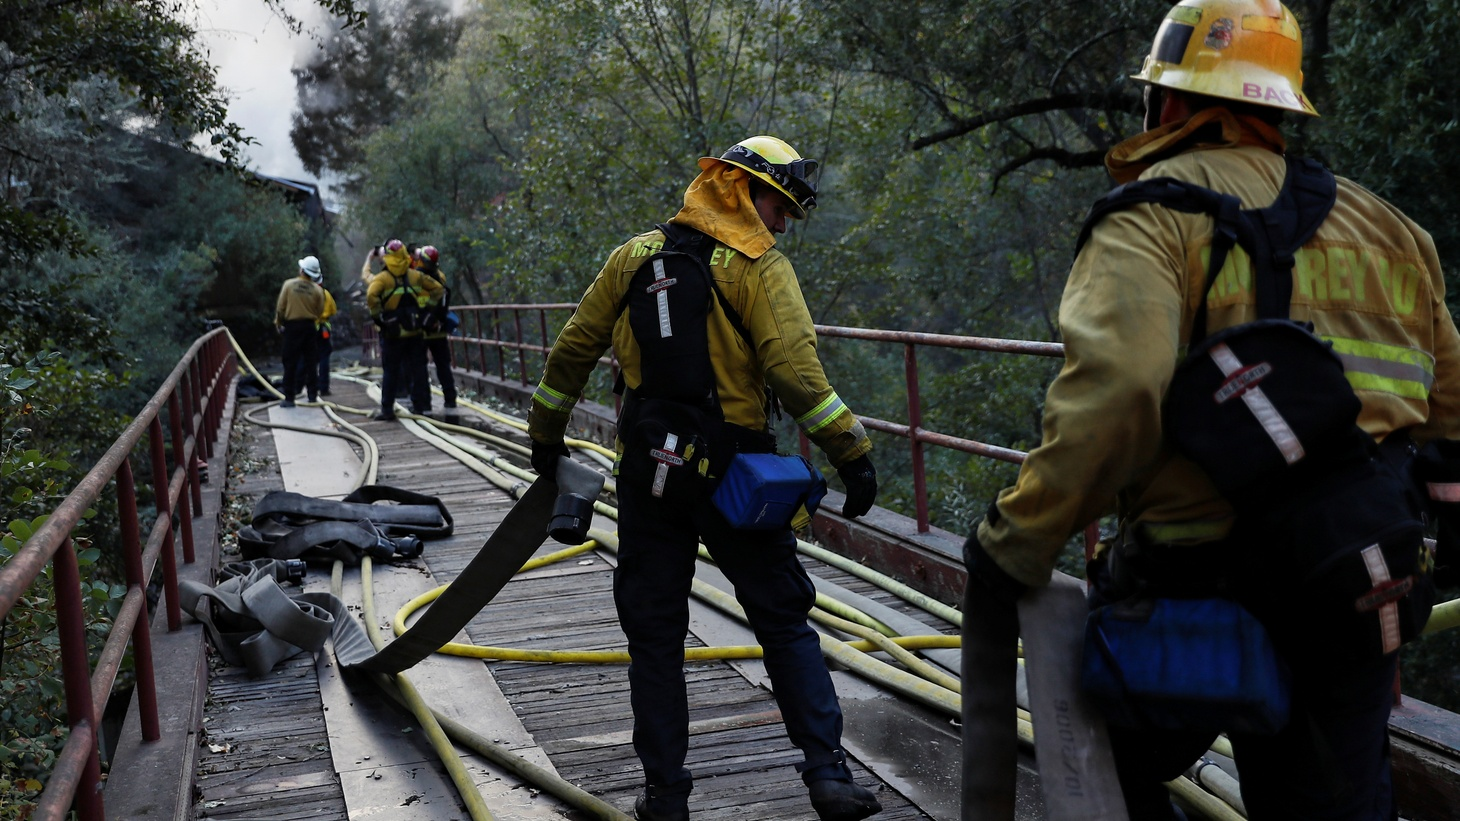 A firefighter works with a hose while working on a burning structure during the Kincade fire in Calistoga, California, U.S. October 29, 2019.